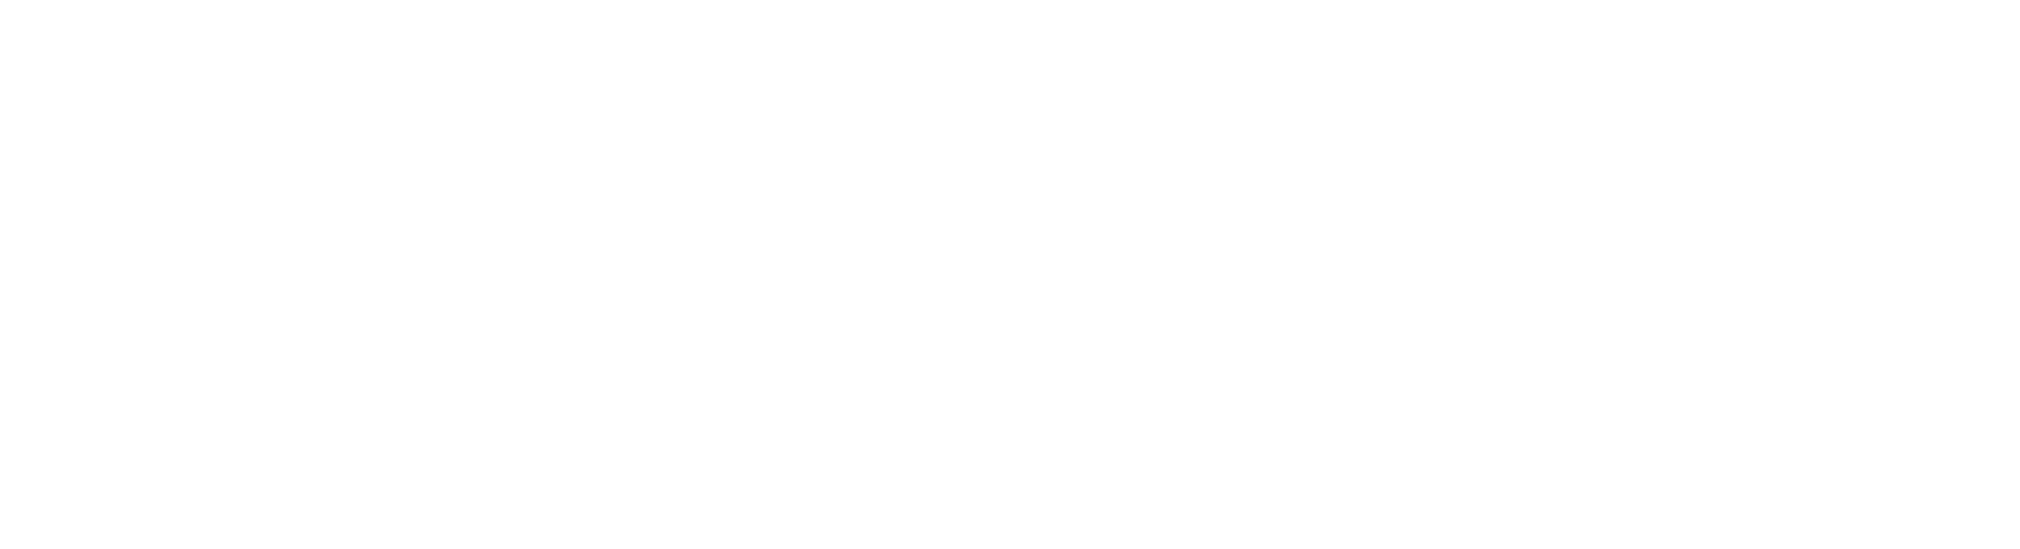 Miami PPP Loan Fraud Firm